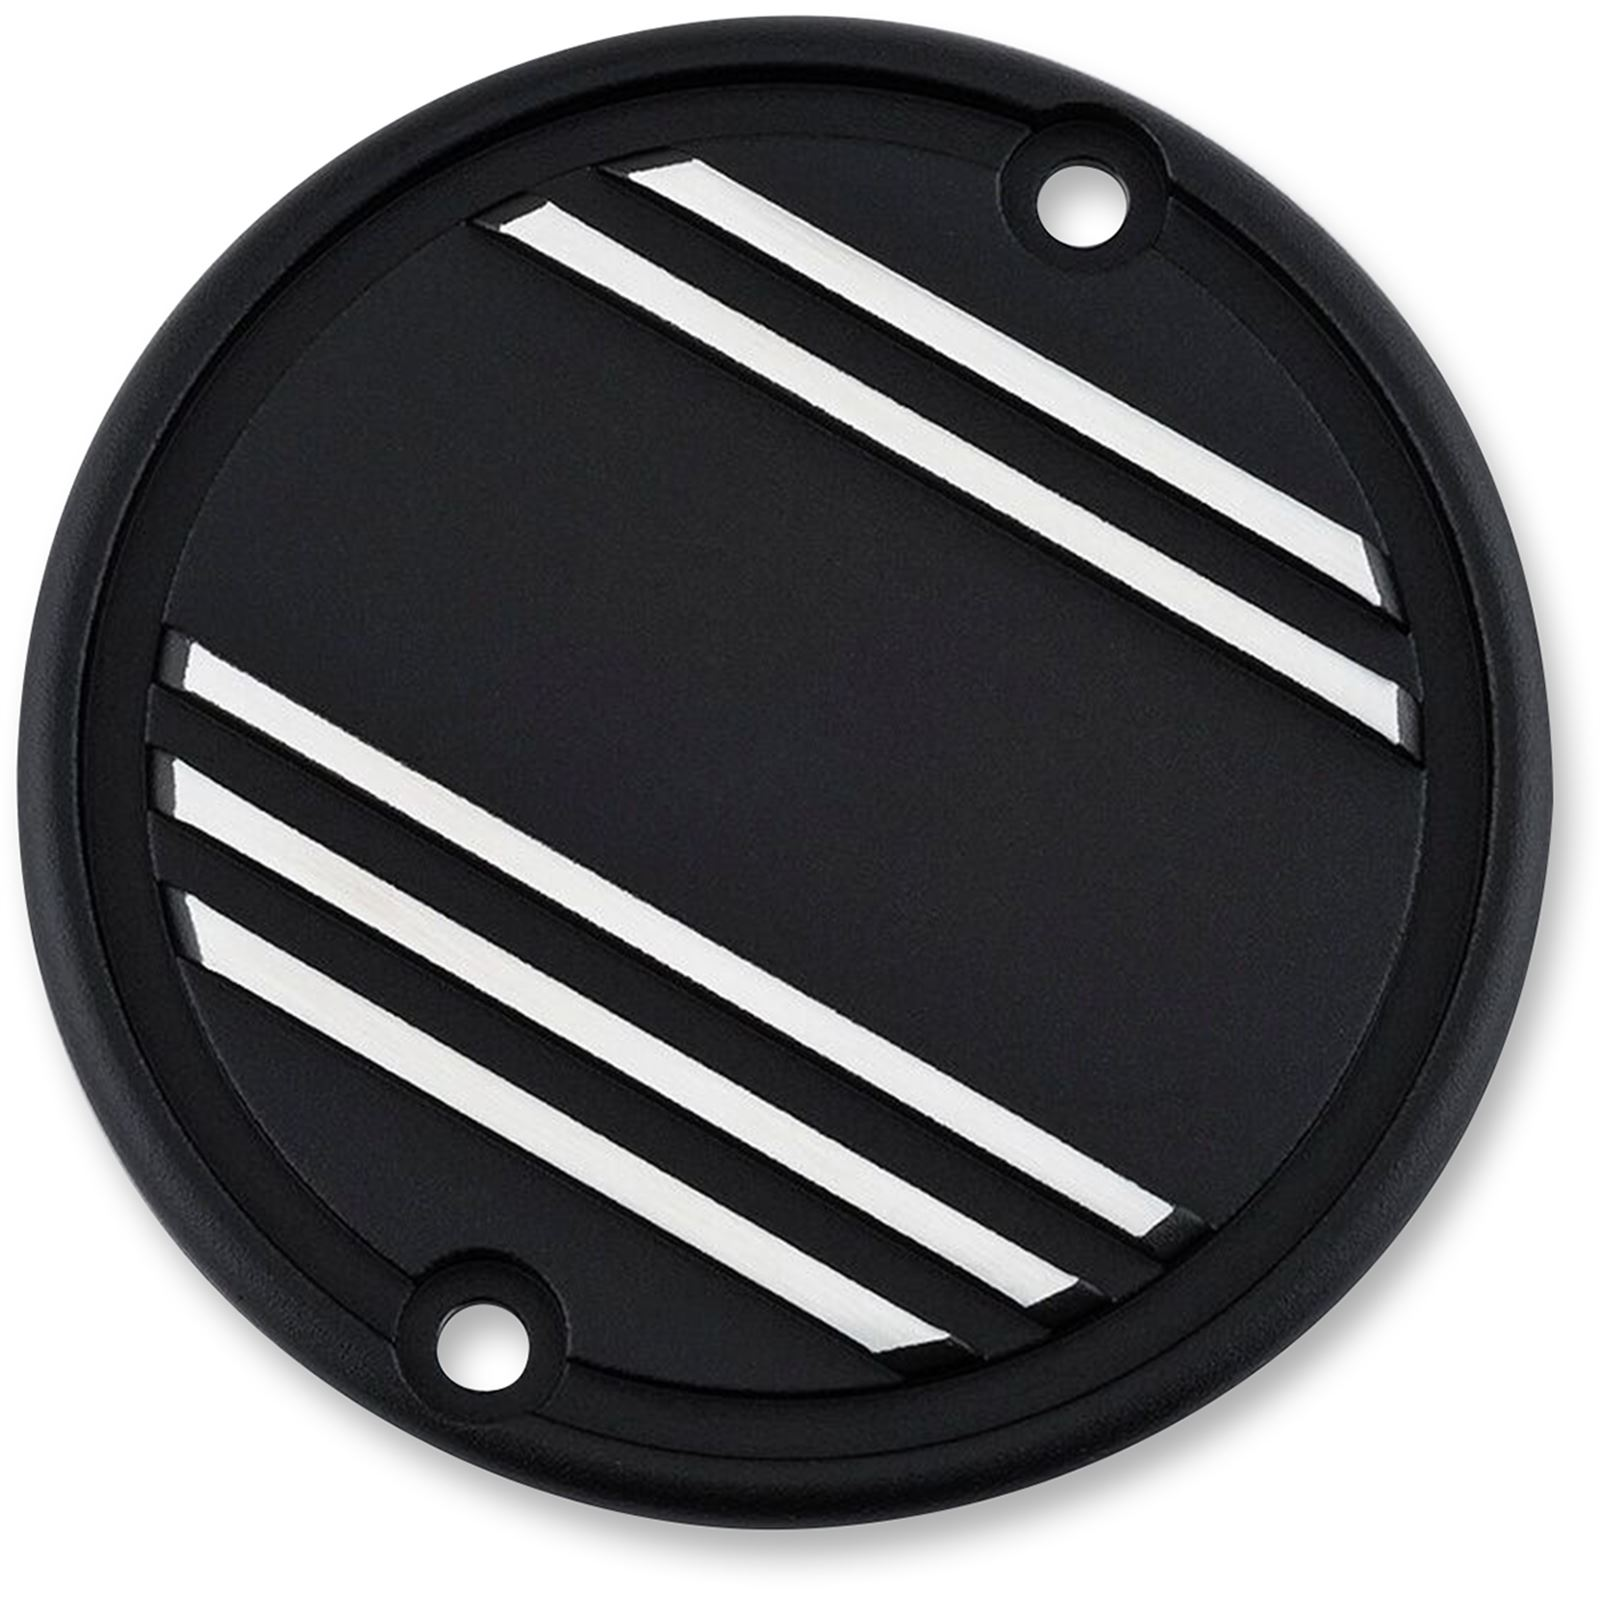 British Customs Case Access Cover - Black/Polished